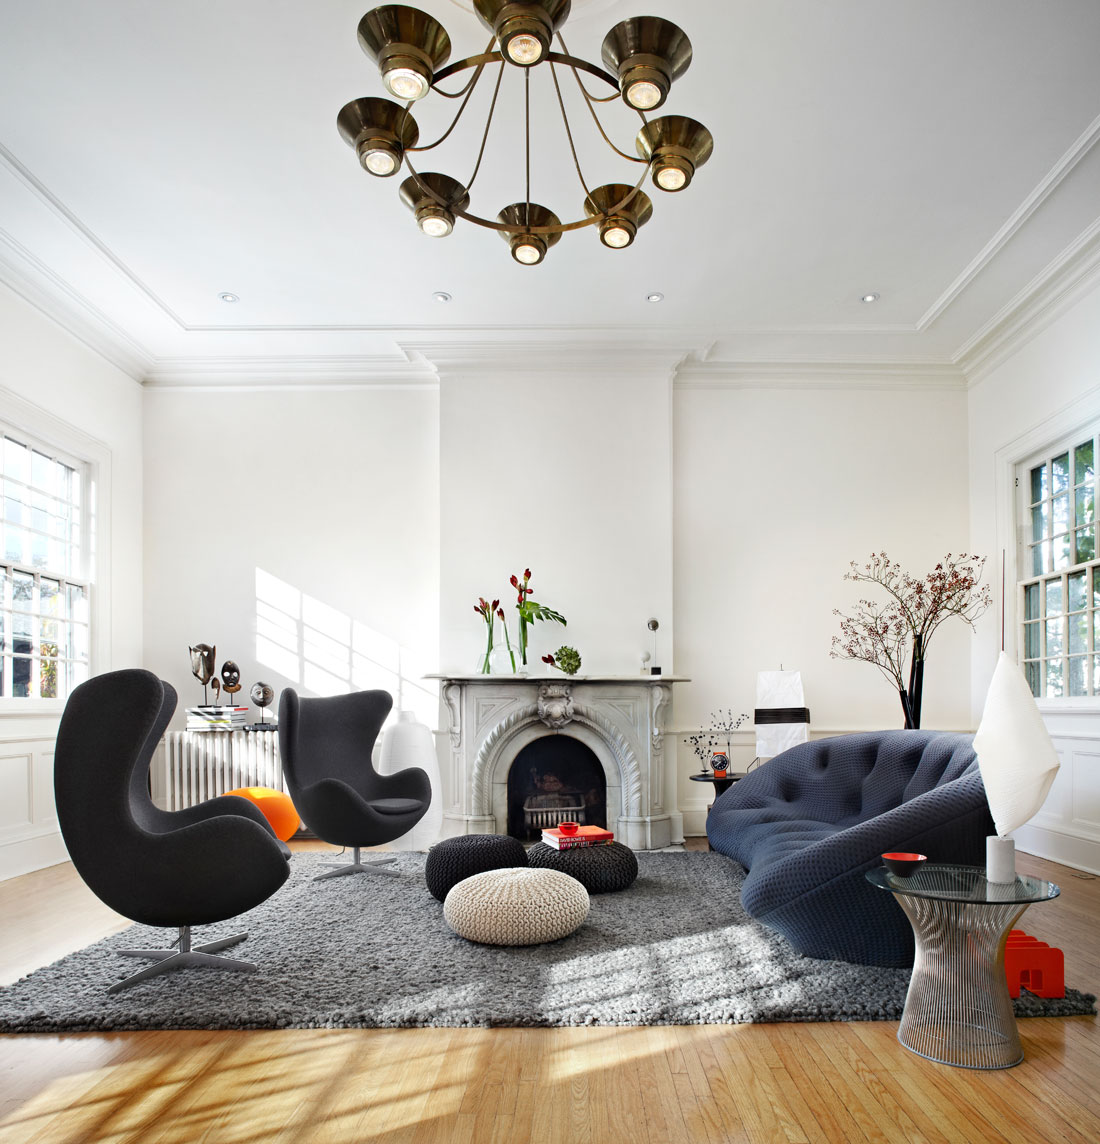 Vivid Home Design With A Strong Personality